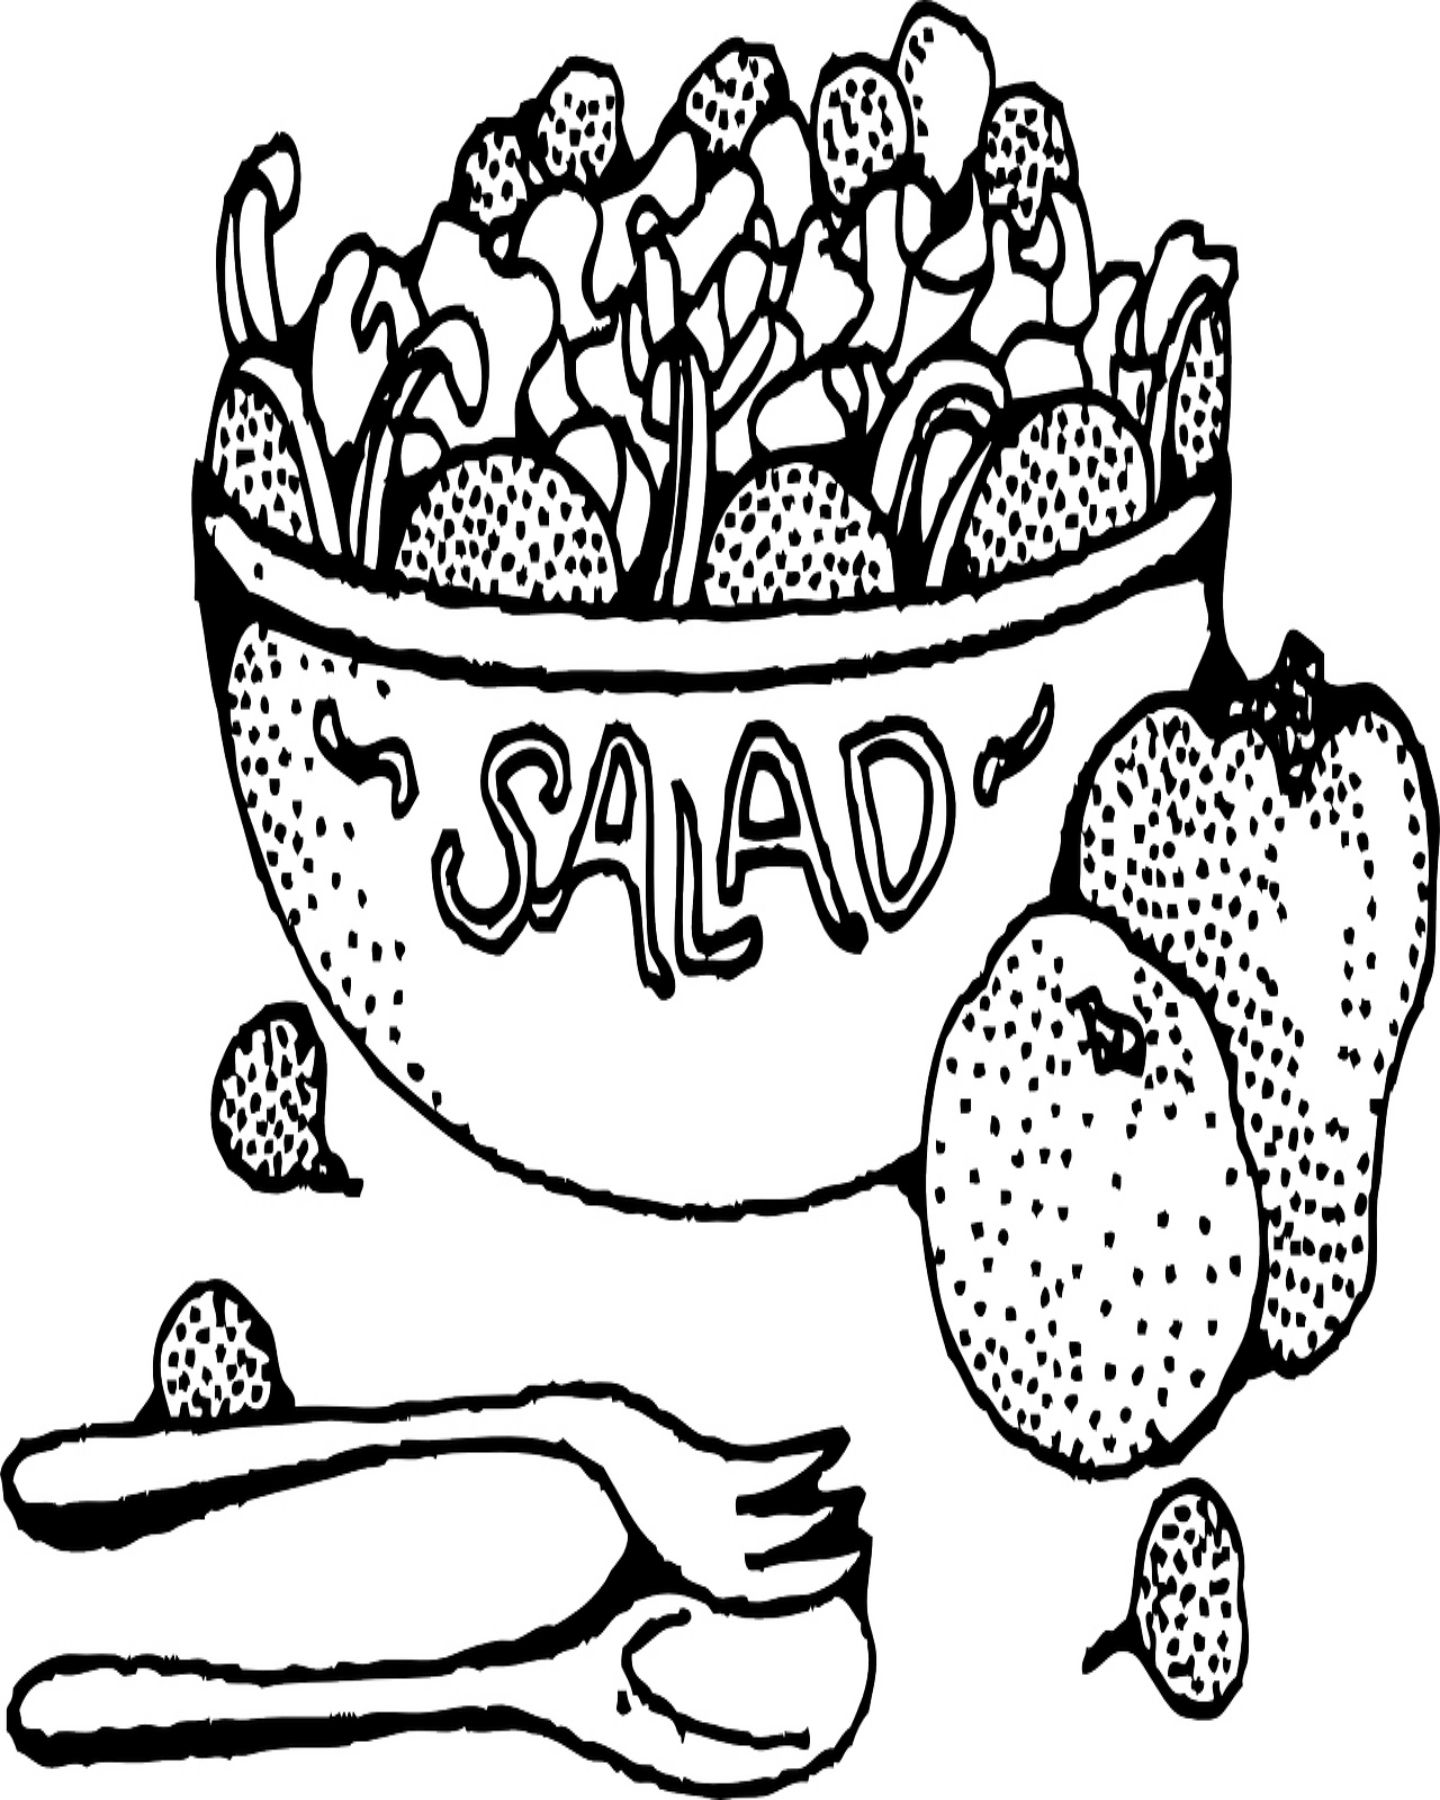 how to draw fruit in a bowl fruit salad drawing at getdrawings free download a fruit bowl how in to draw